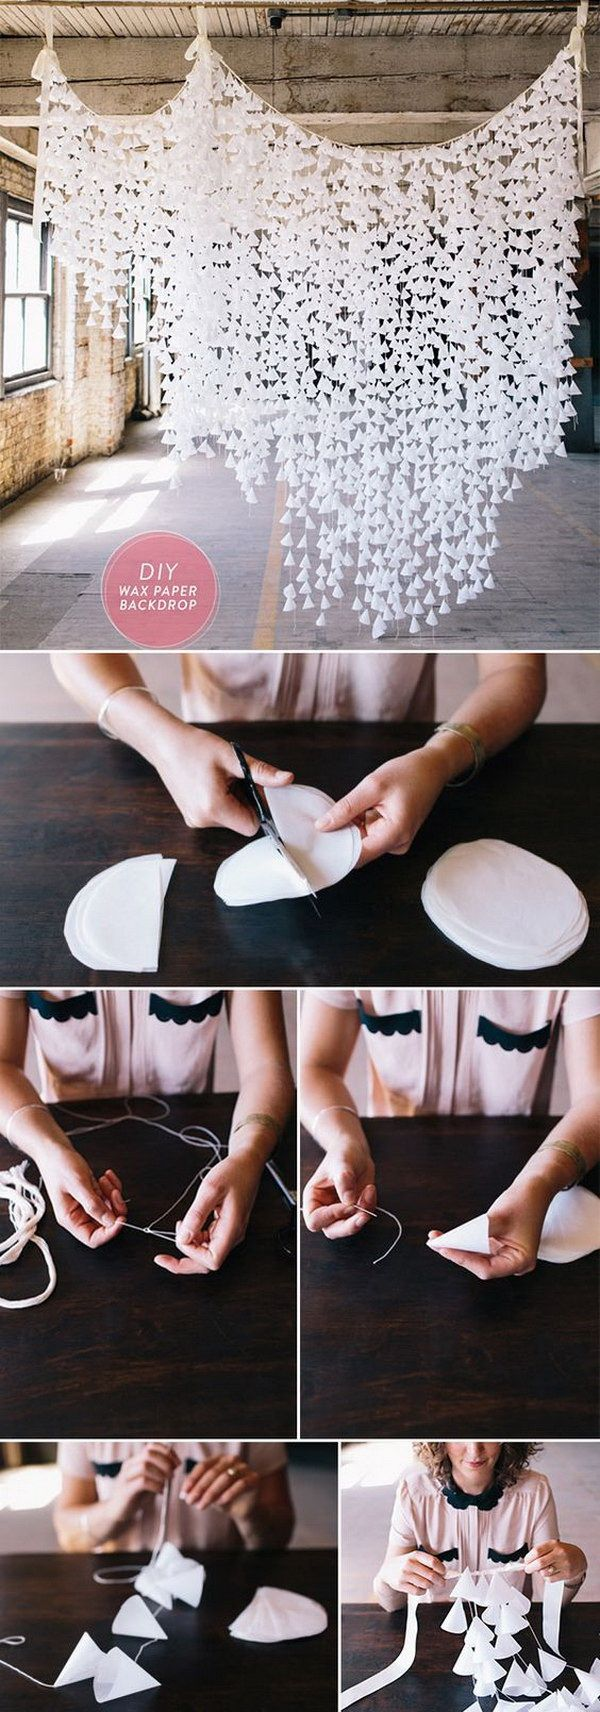 DIY Wax Paper Photo Booth Backdrop.